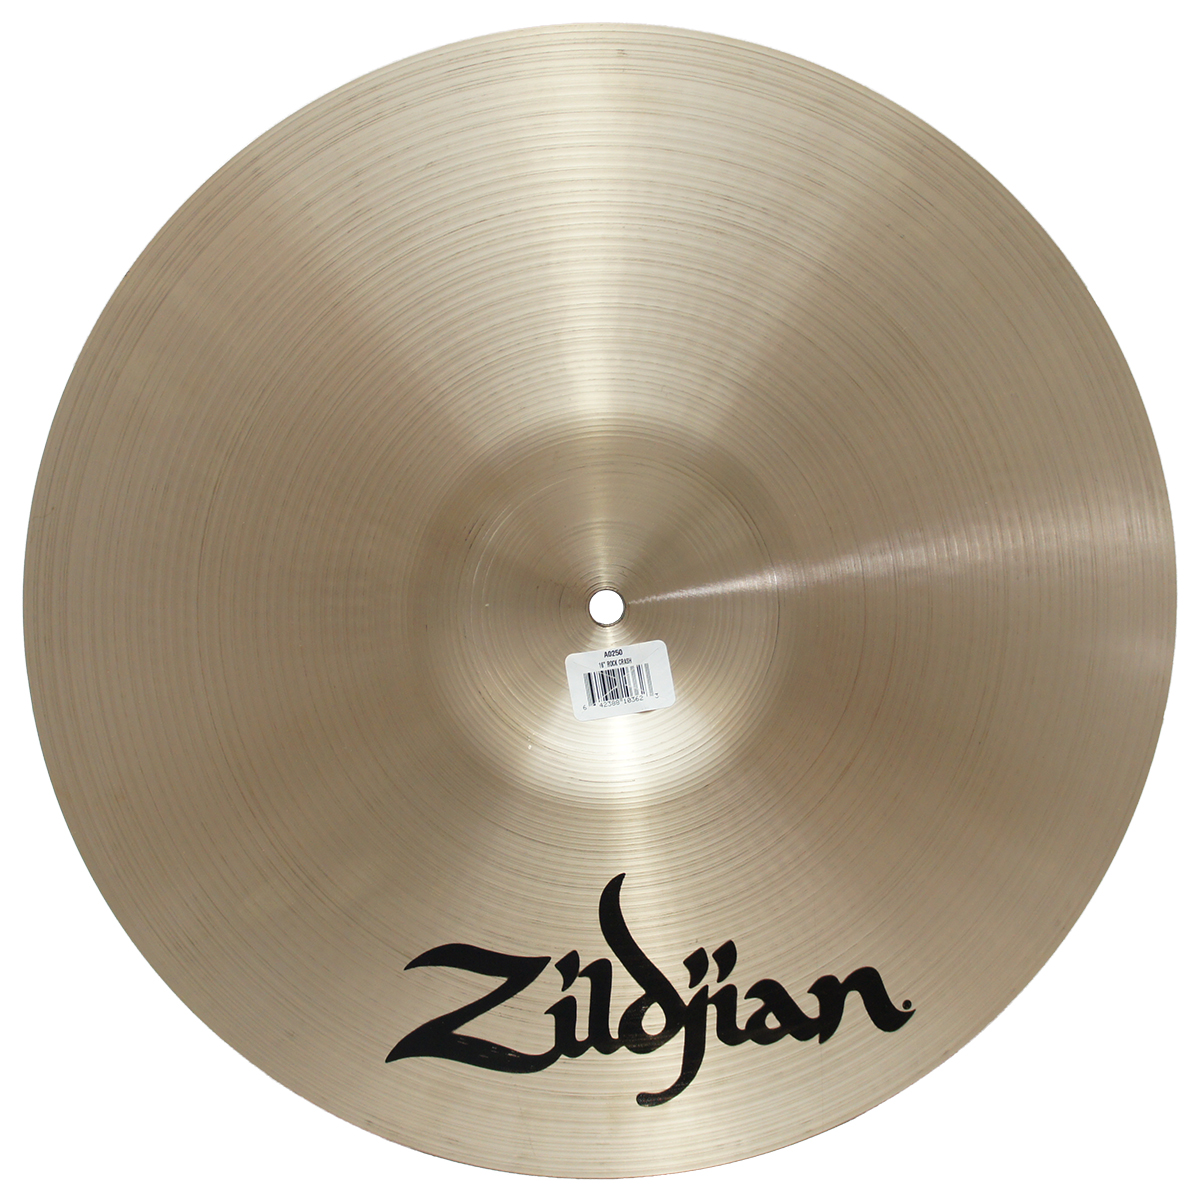 Loudest Crash Cymbals : zildjian 16 a series rock crash drumset cymbal with high pitch loud volume a0250 zil12 a0250 us ~ Vivirlamusica.com Haus und Dekorationen